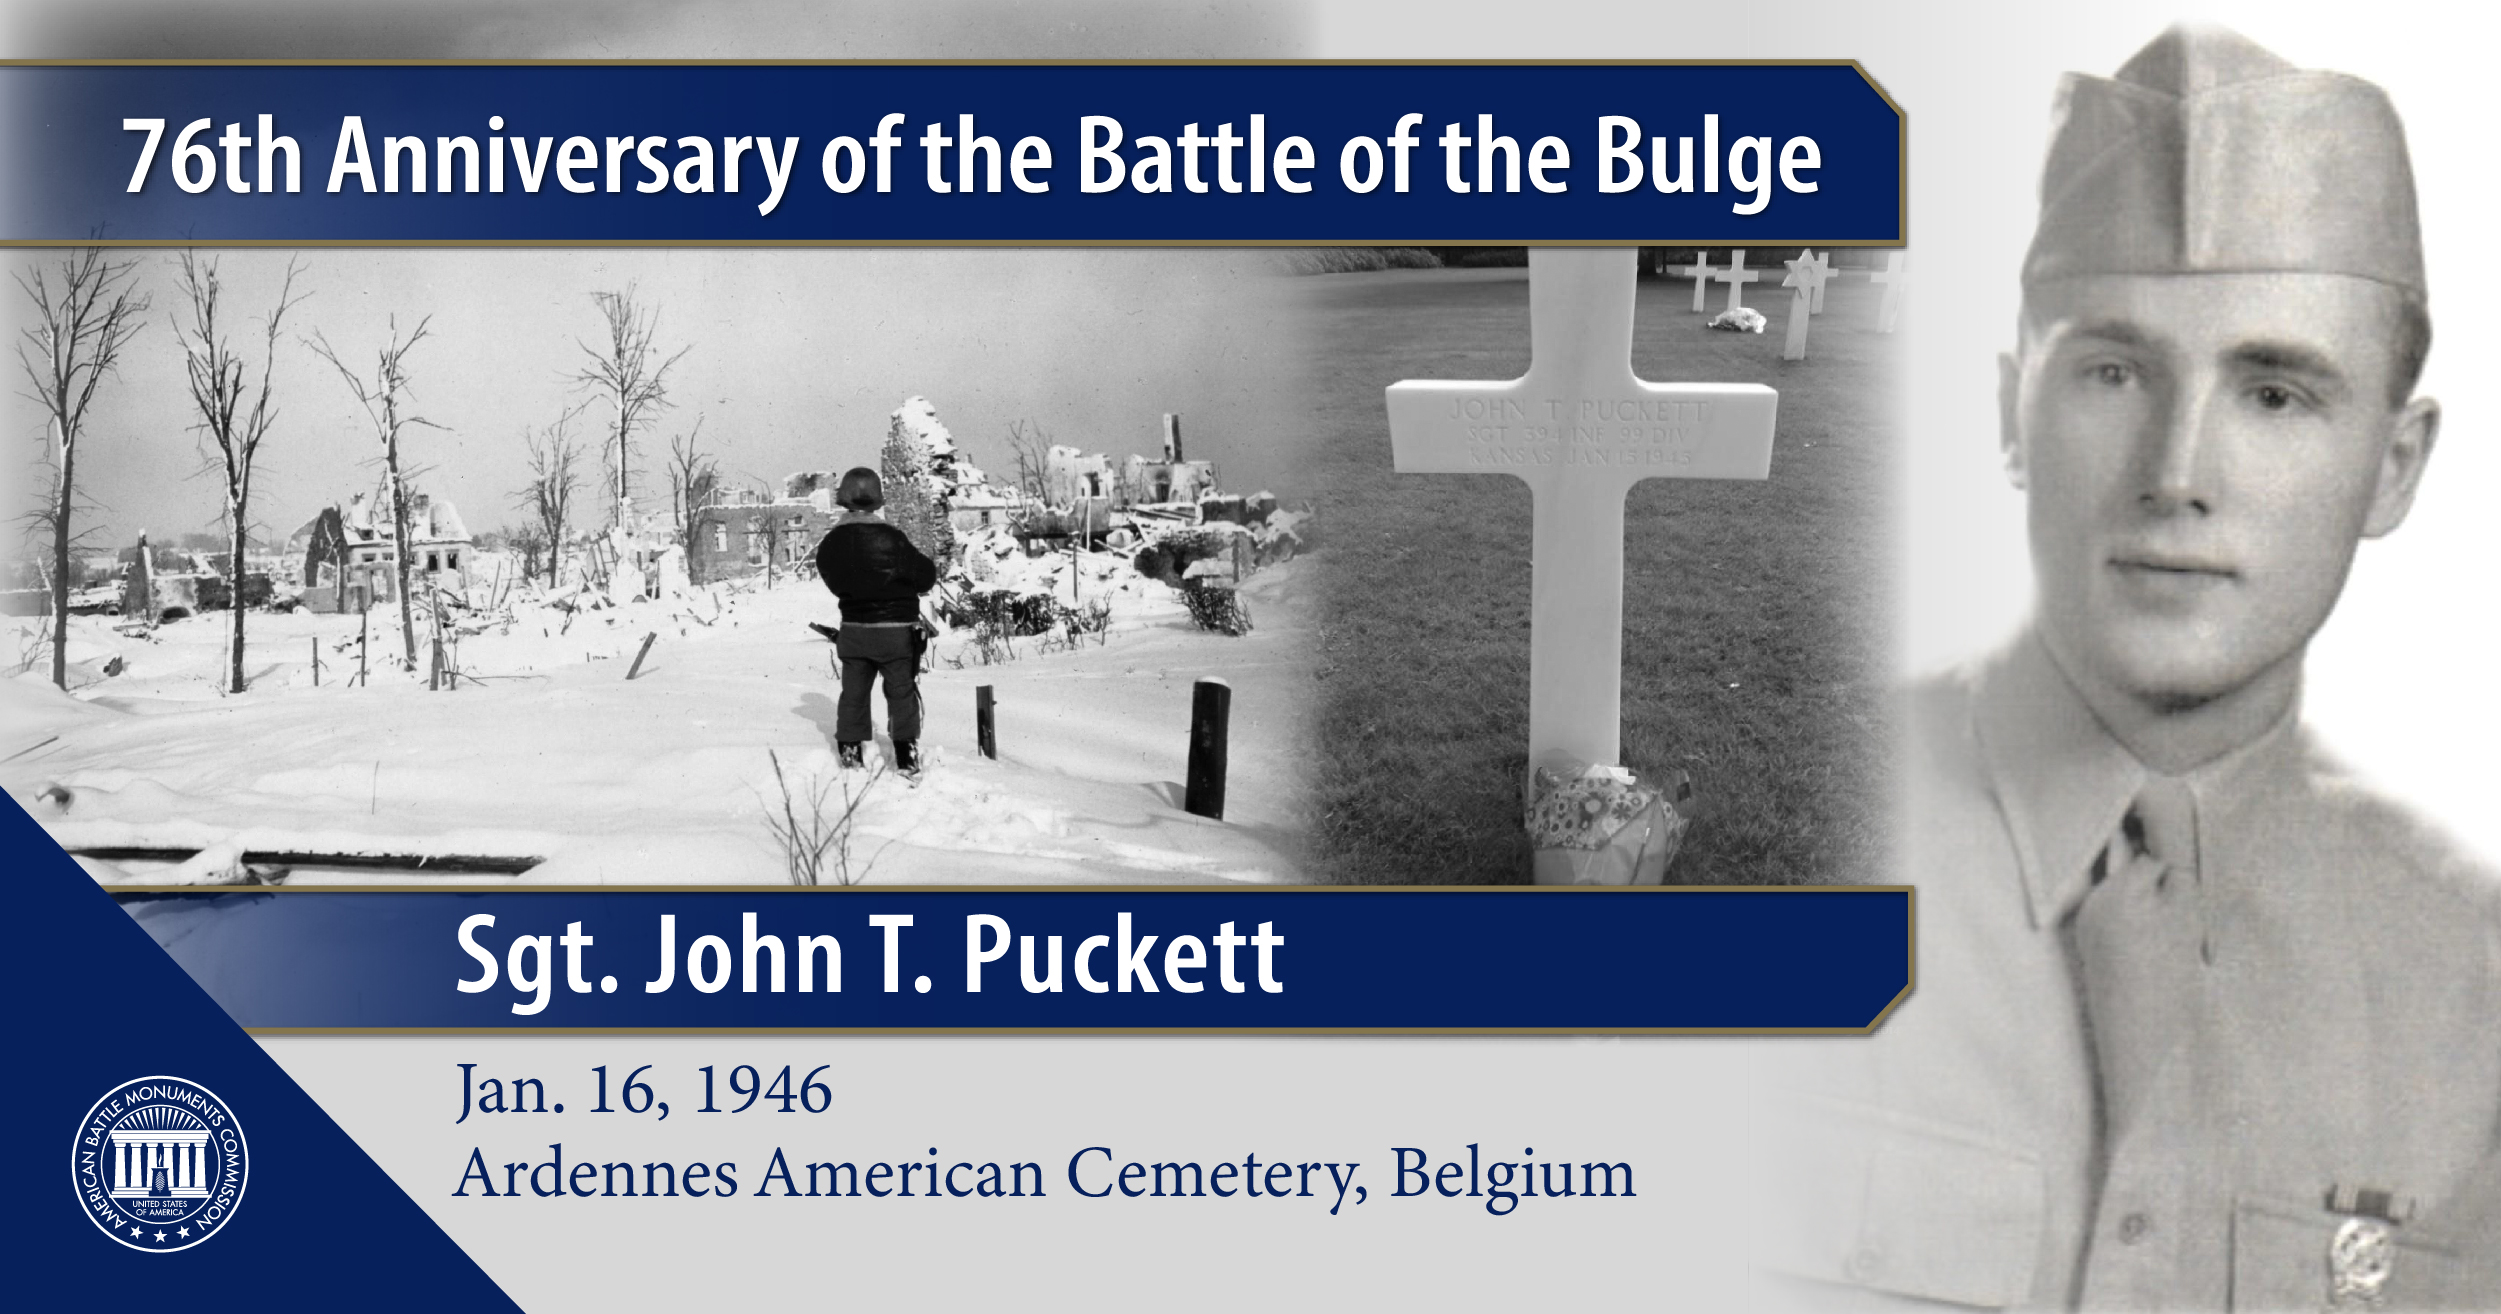 Sgt. John T. Puckett, buried in Ardennes American Cemetery